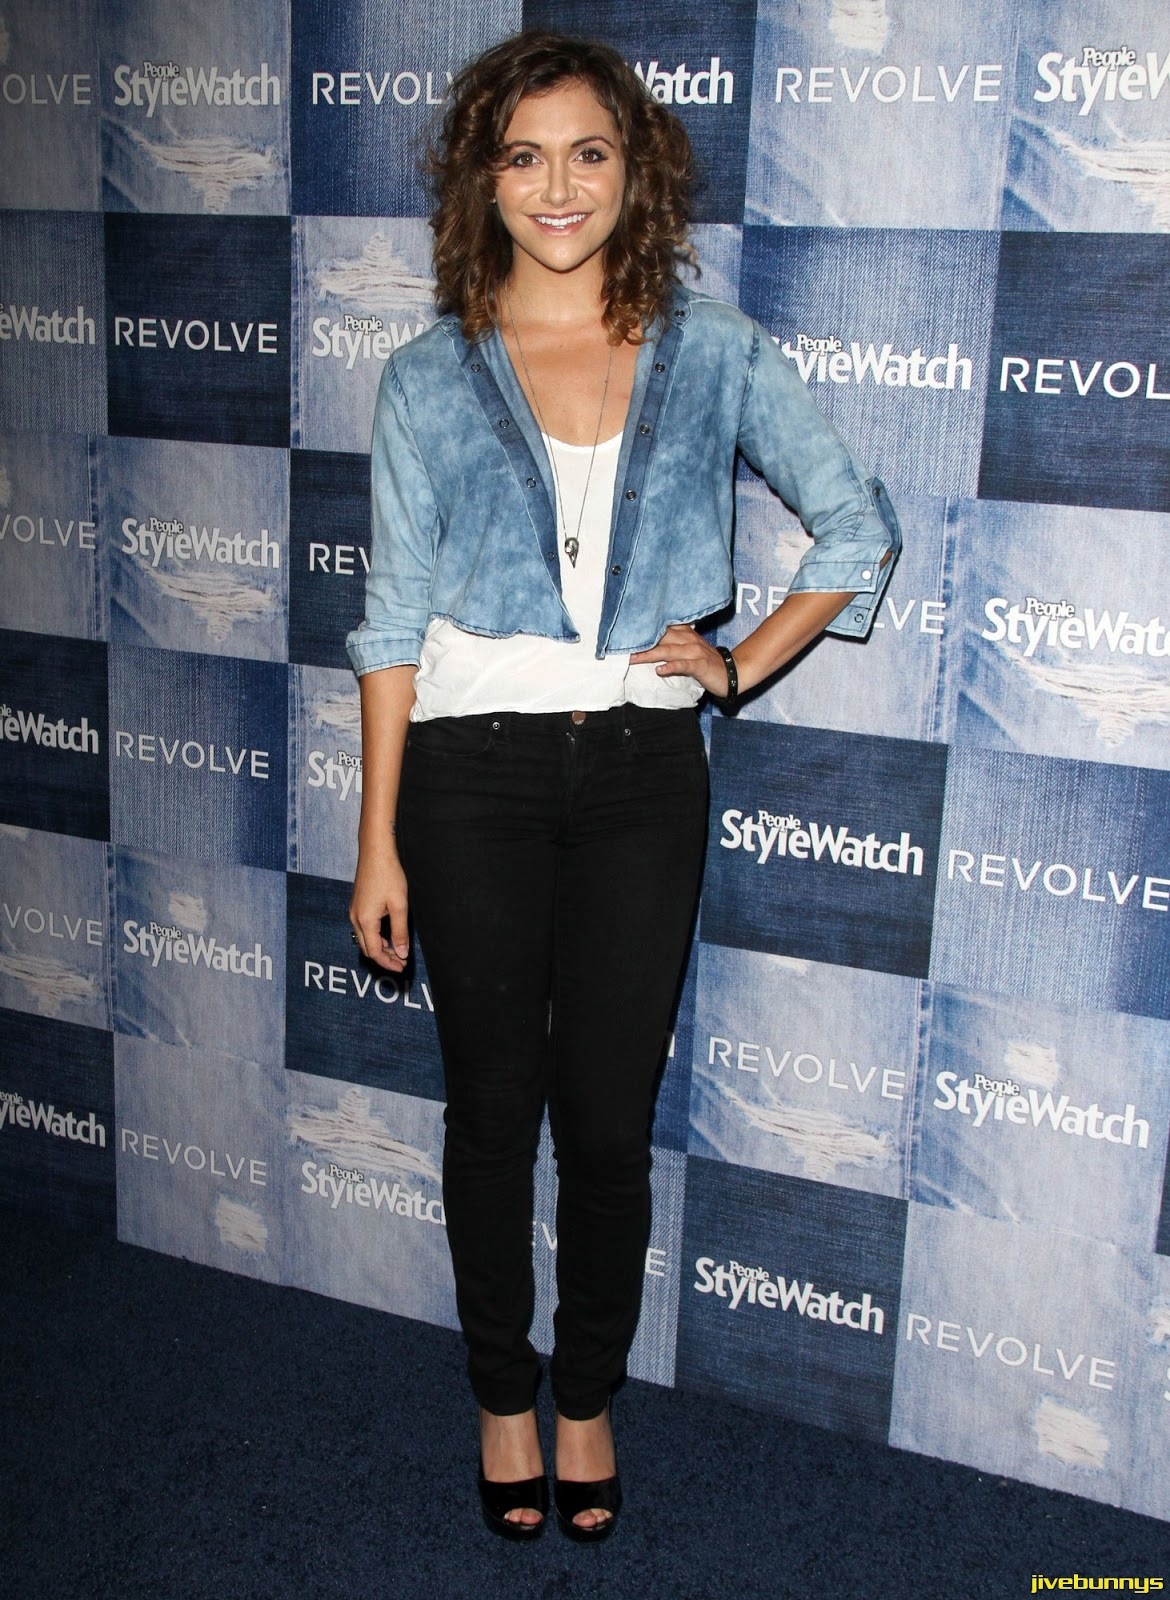 Alyson Stoner - People StyleWatch 4th Annual Denim party in LA 09/18/14